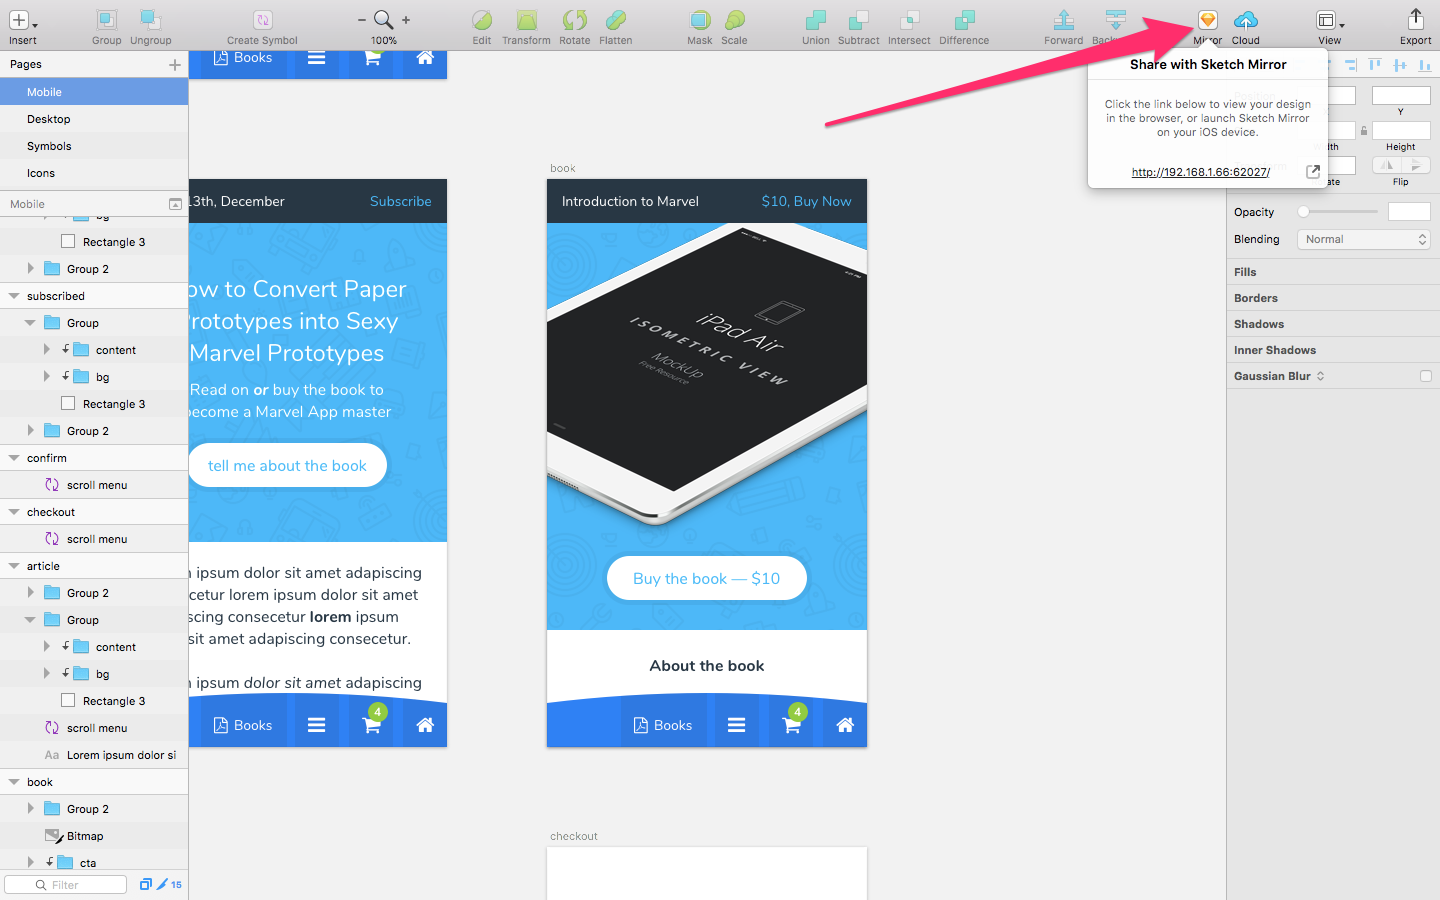 Connecting to Sketch Mirror